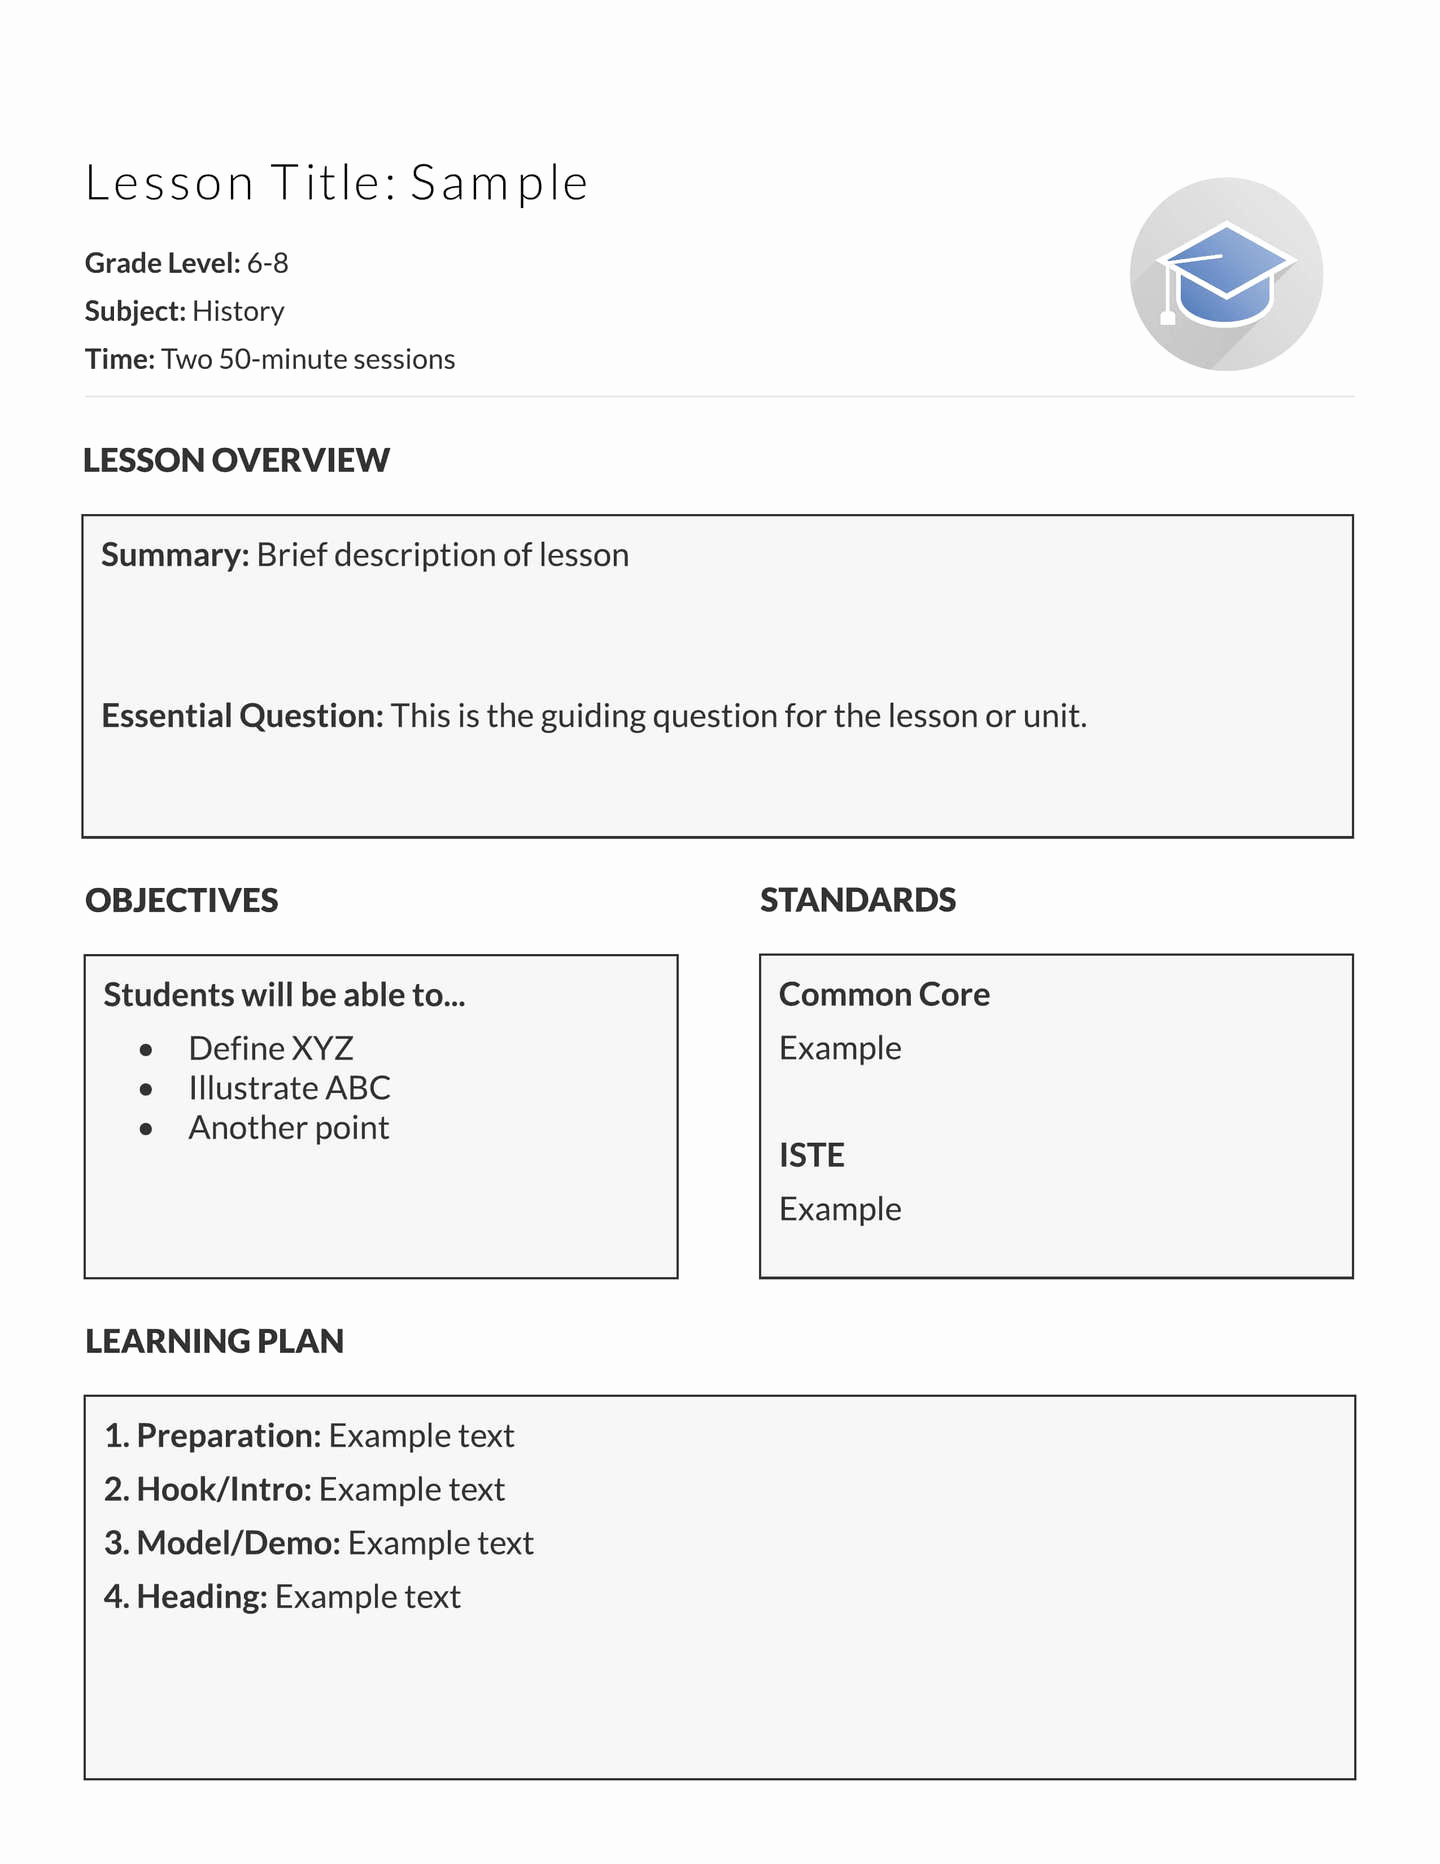 Teacher Lesson Plan Template Awesome 5 Free Lesson Plan Templates & Examples Lucidpress